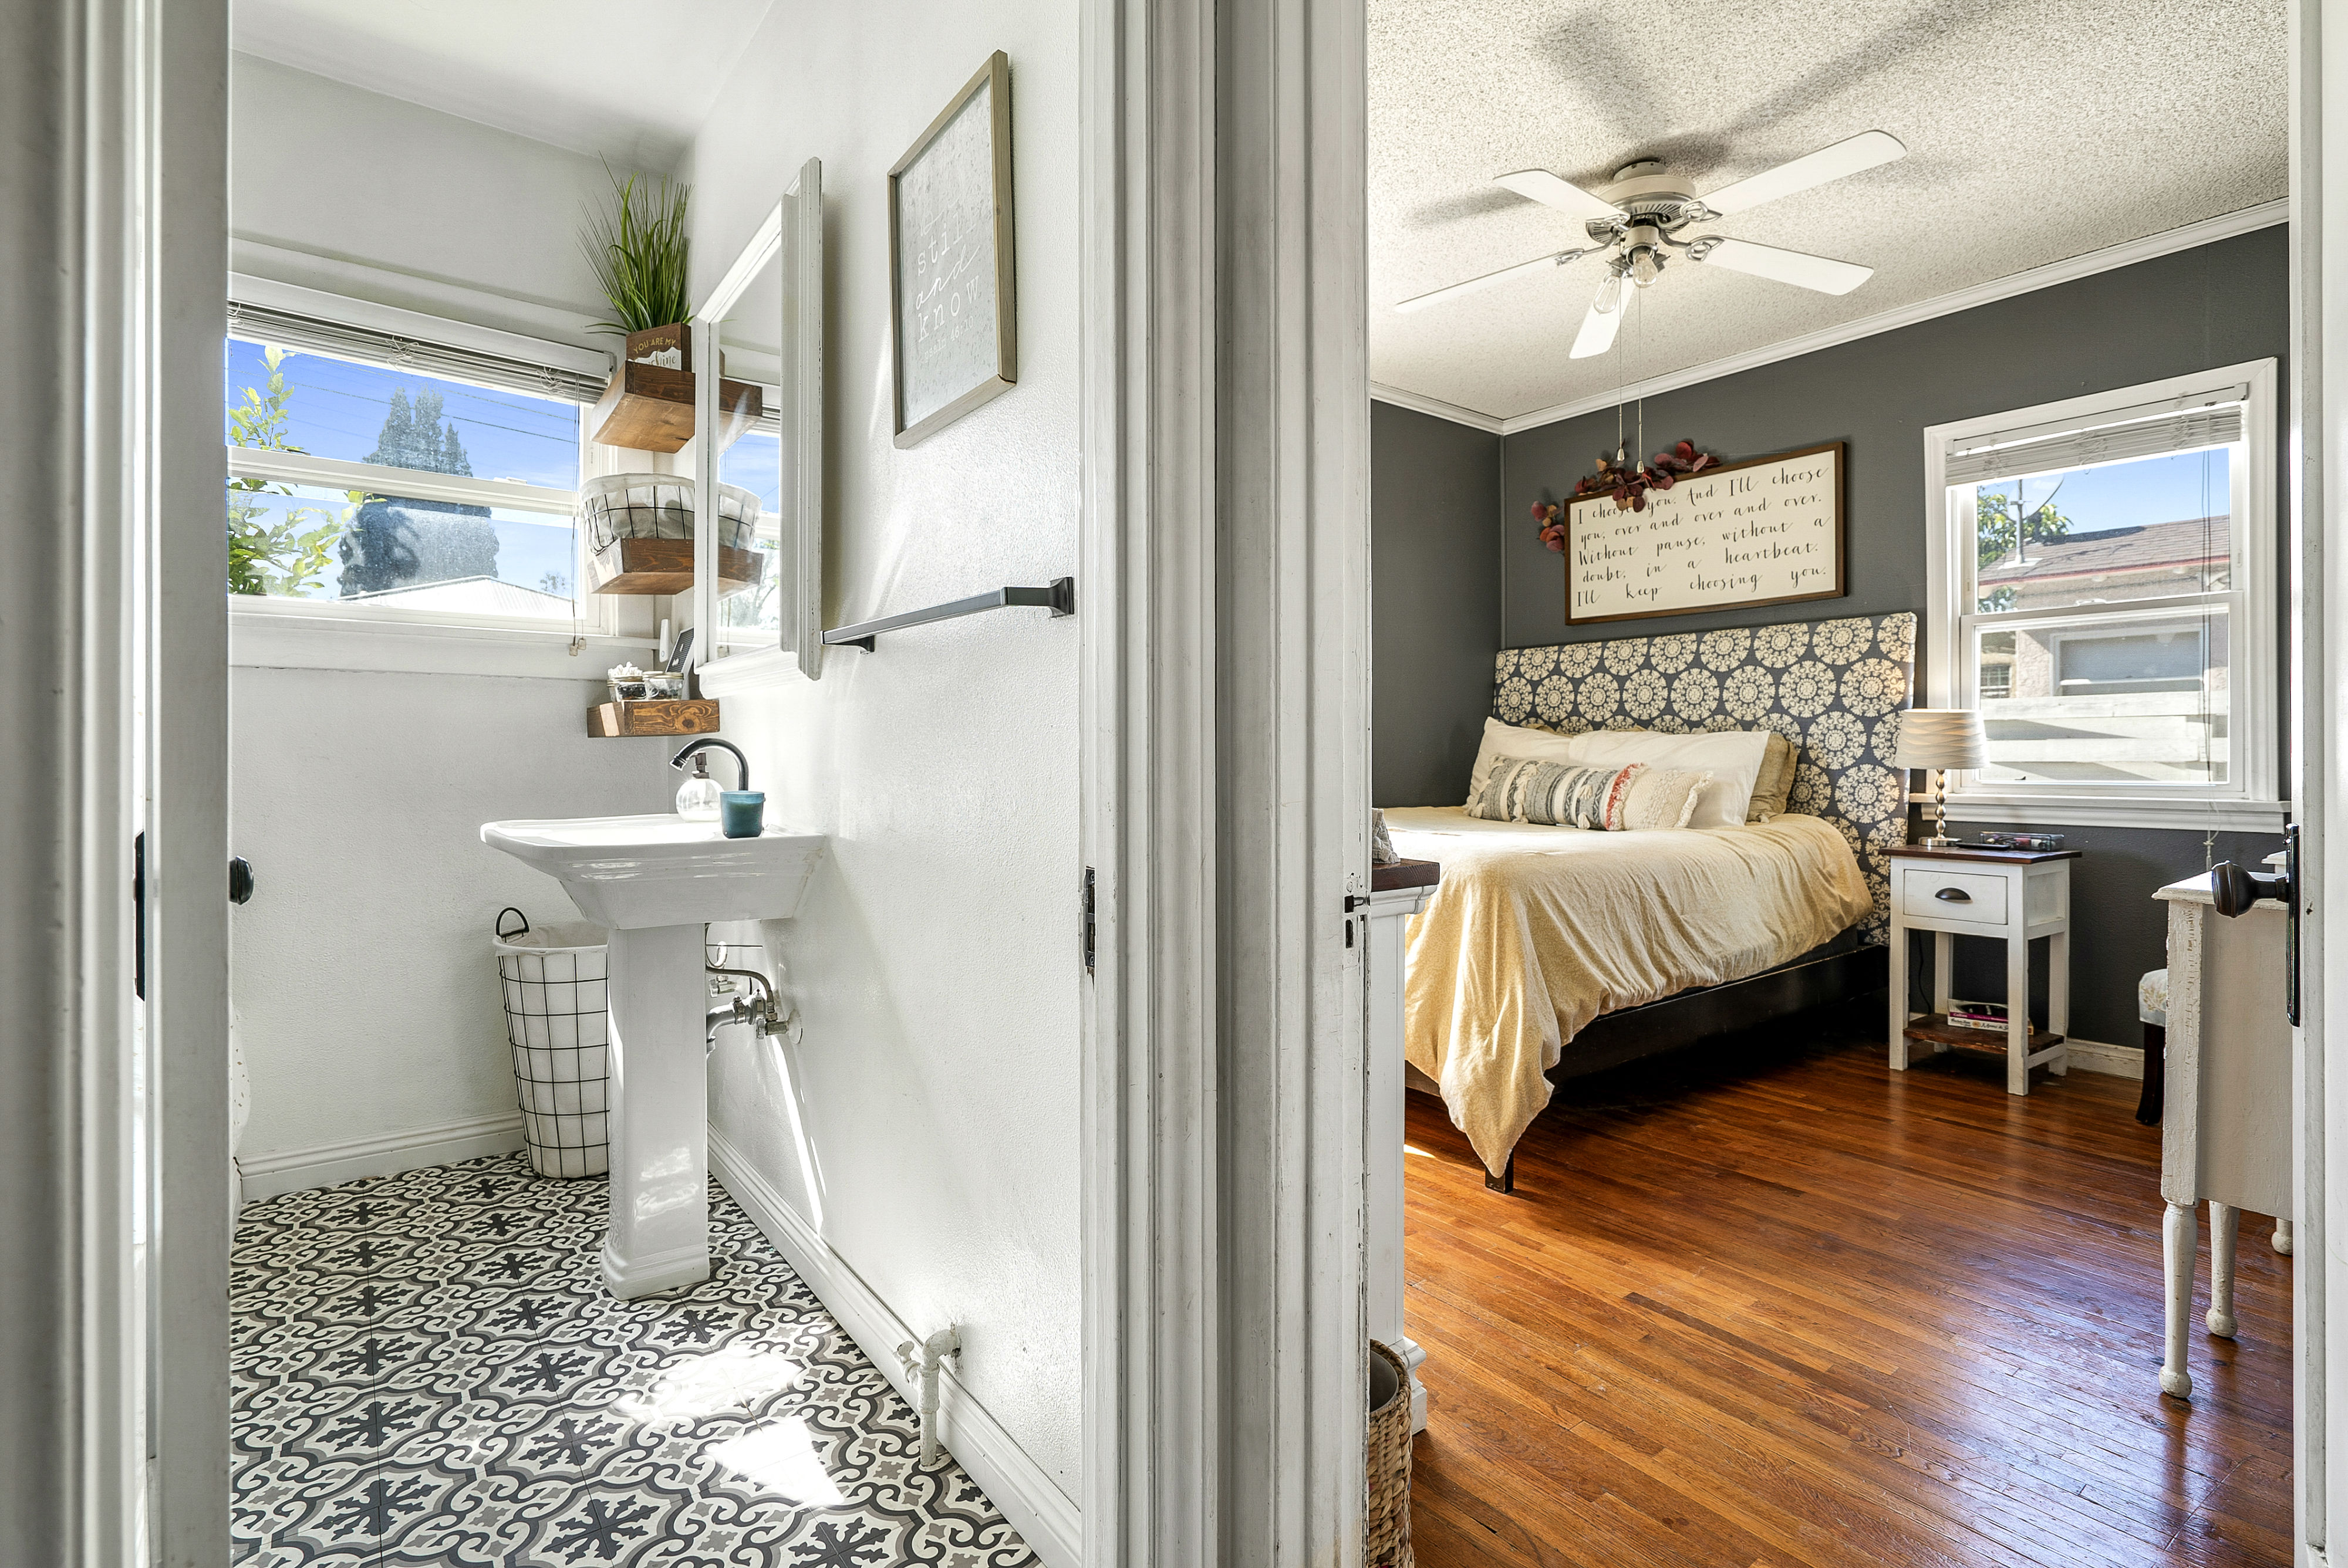 View into the bathroom and the master bedroom.